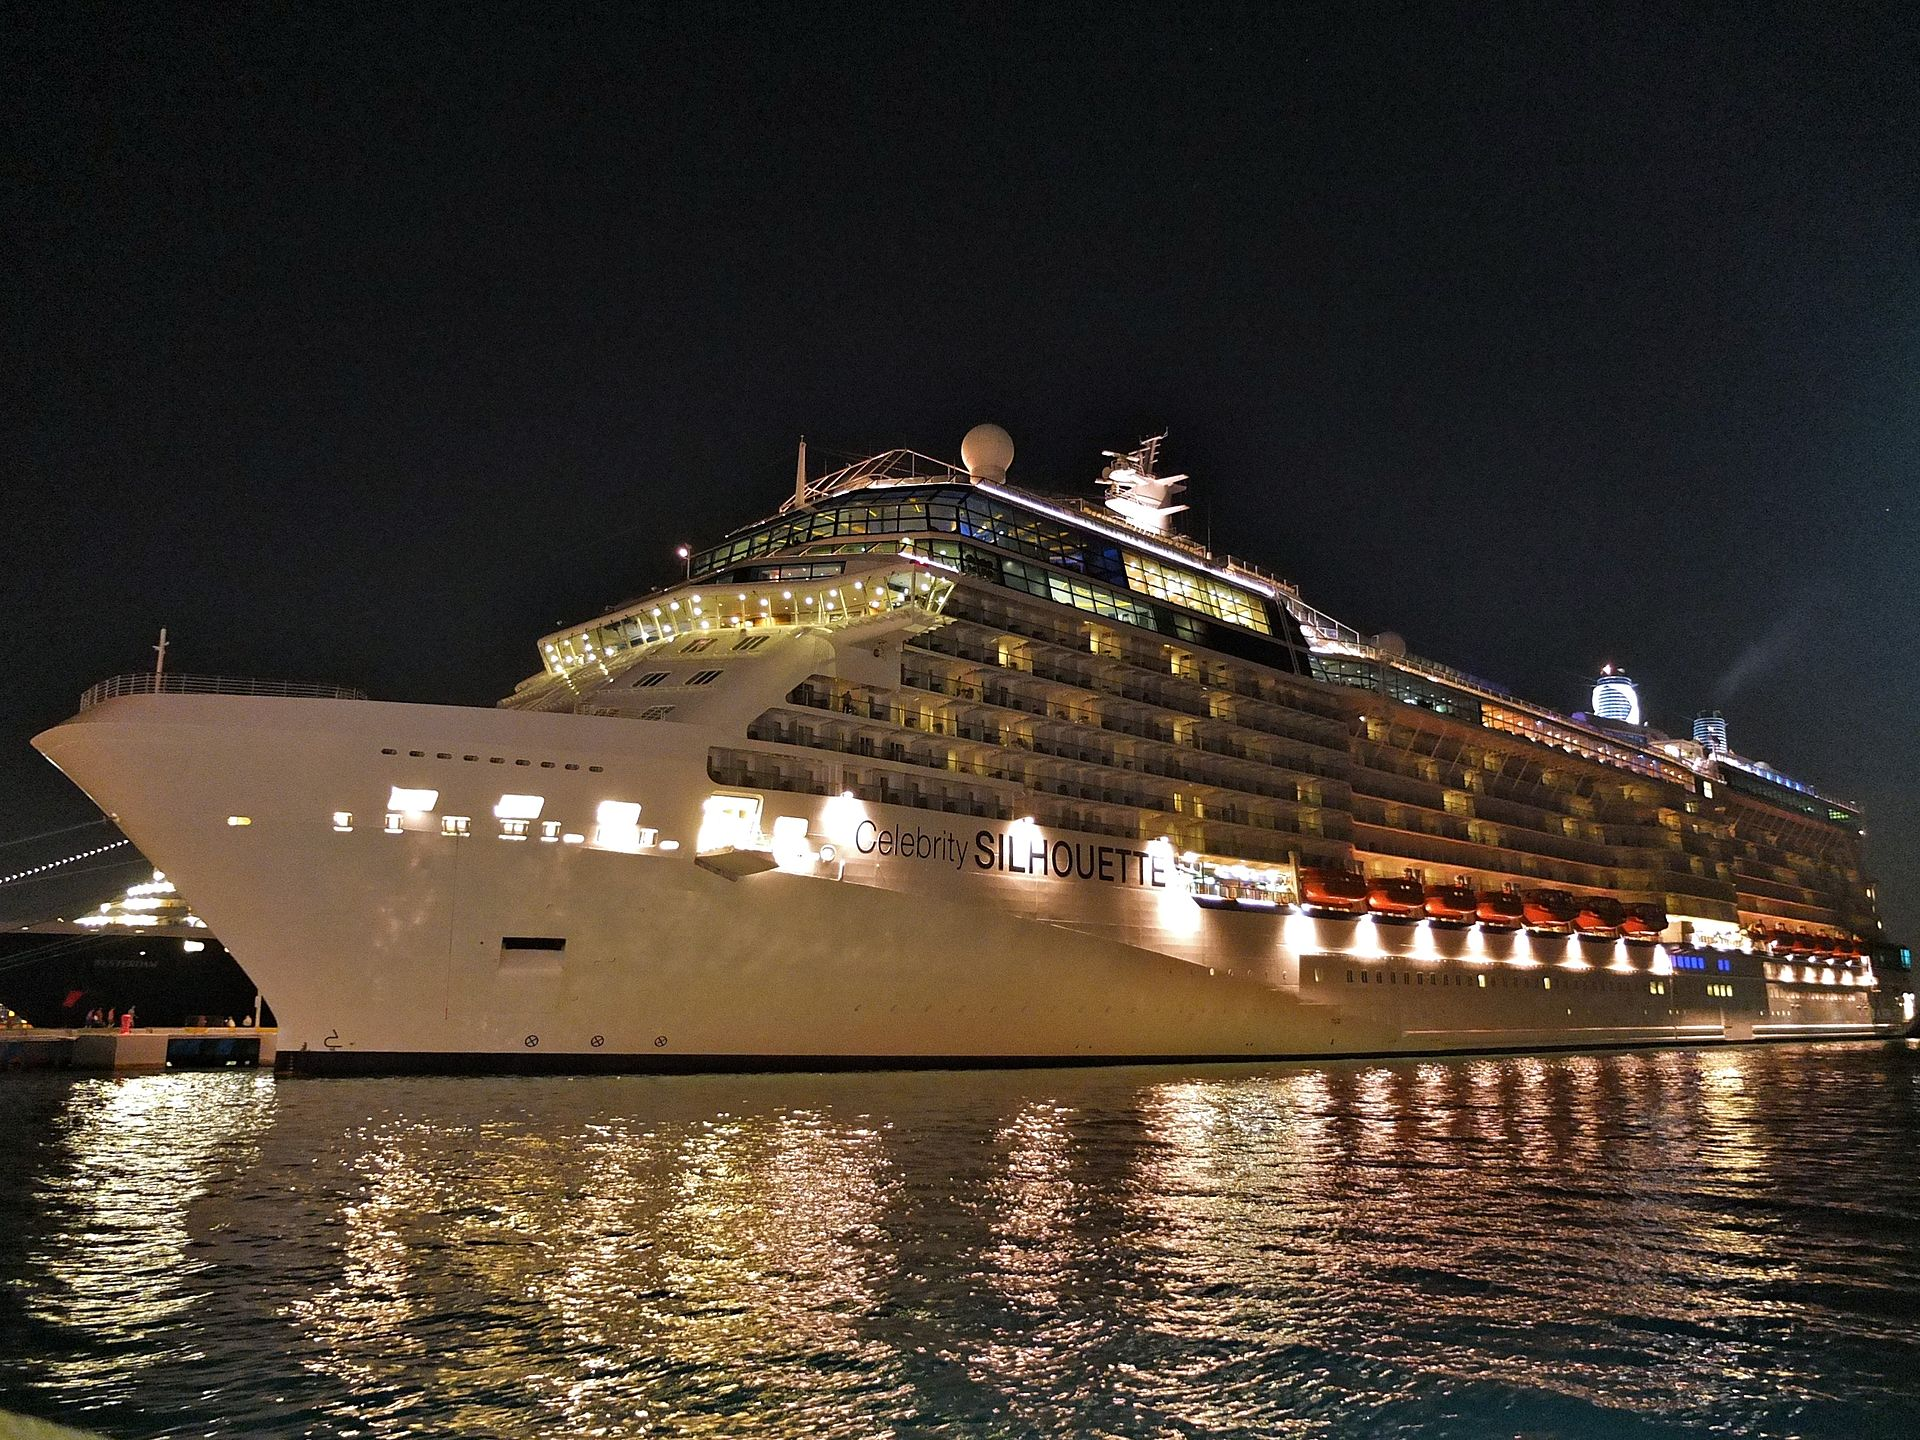 Celebrity Silhouette cruise ship at night